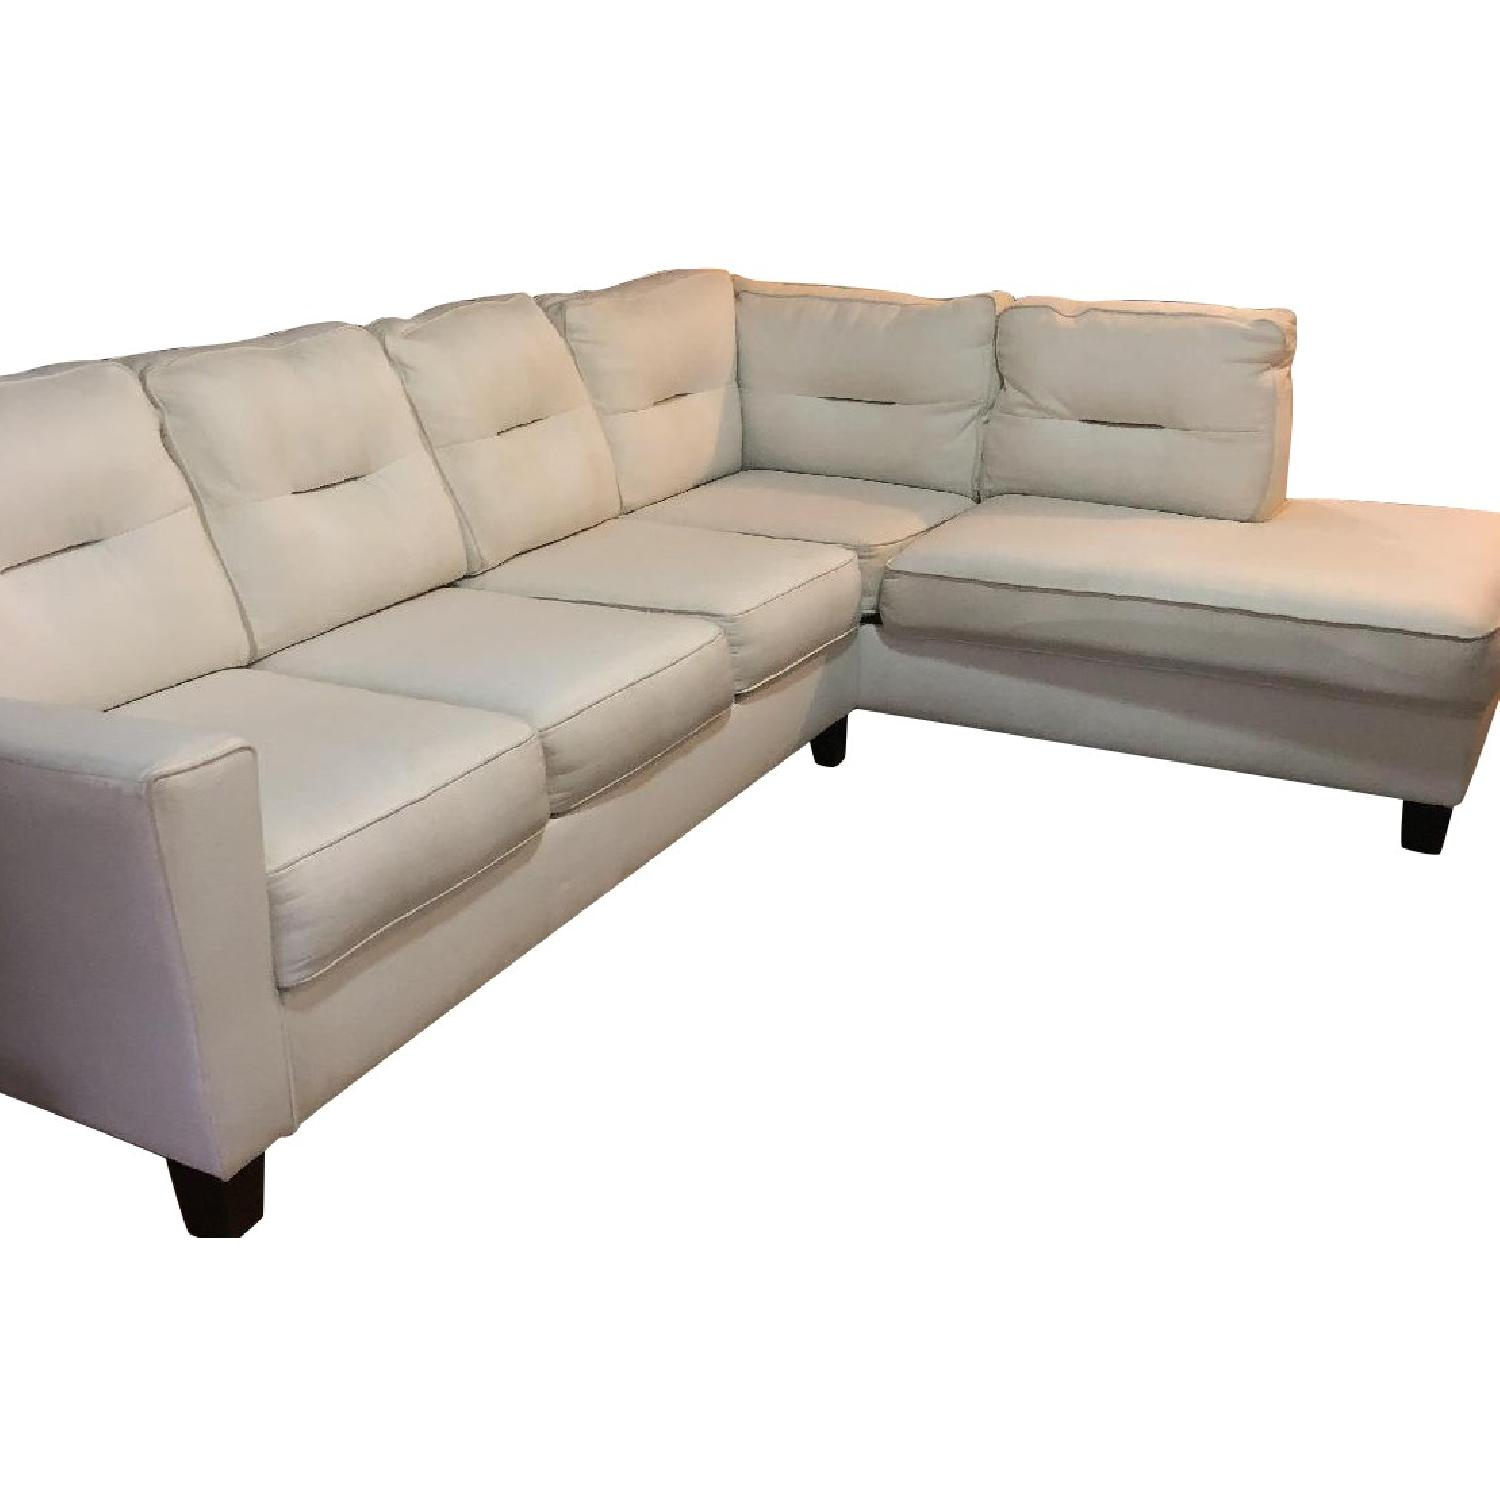 Kirkland White 2-Piece Sectional Sofa